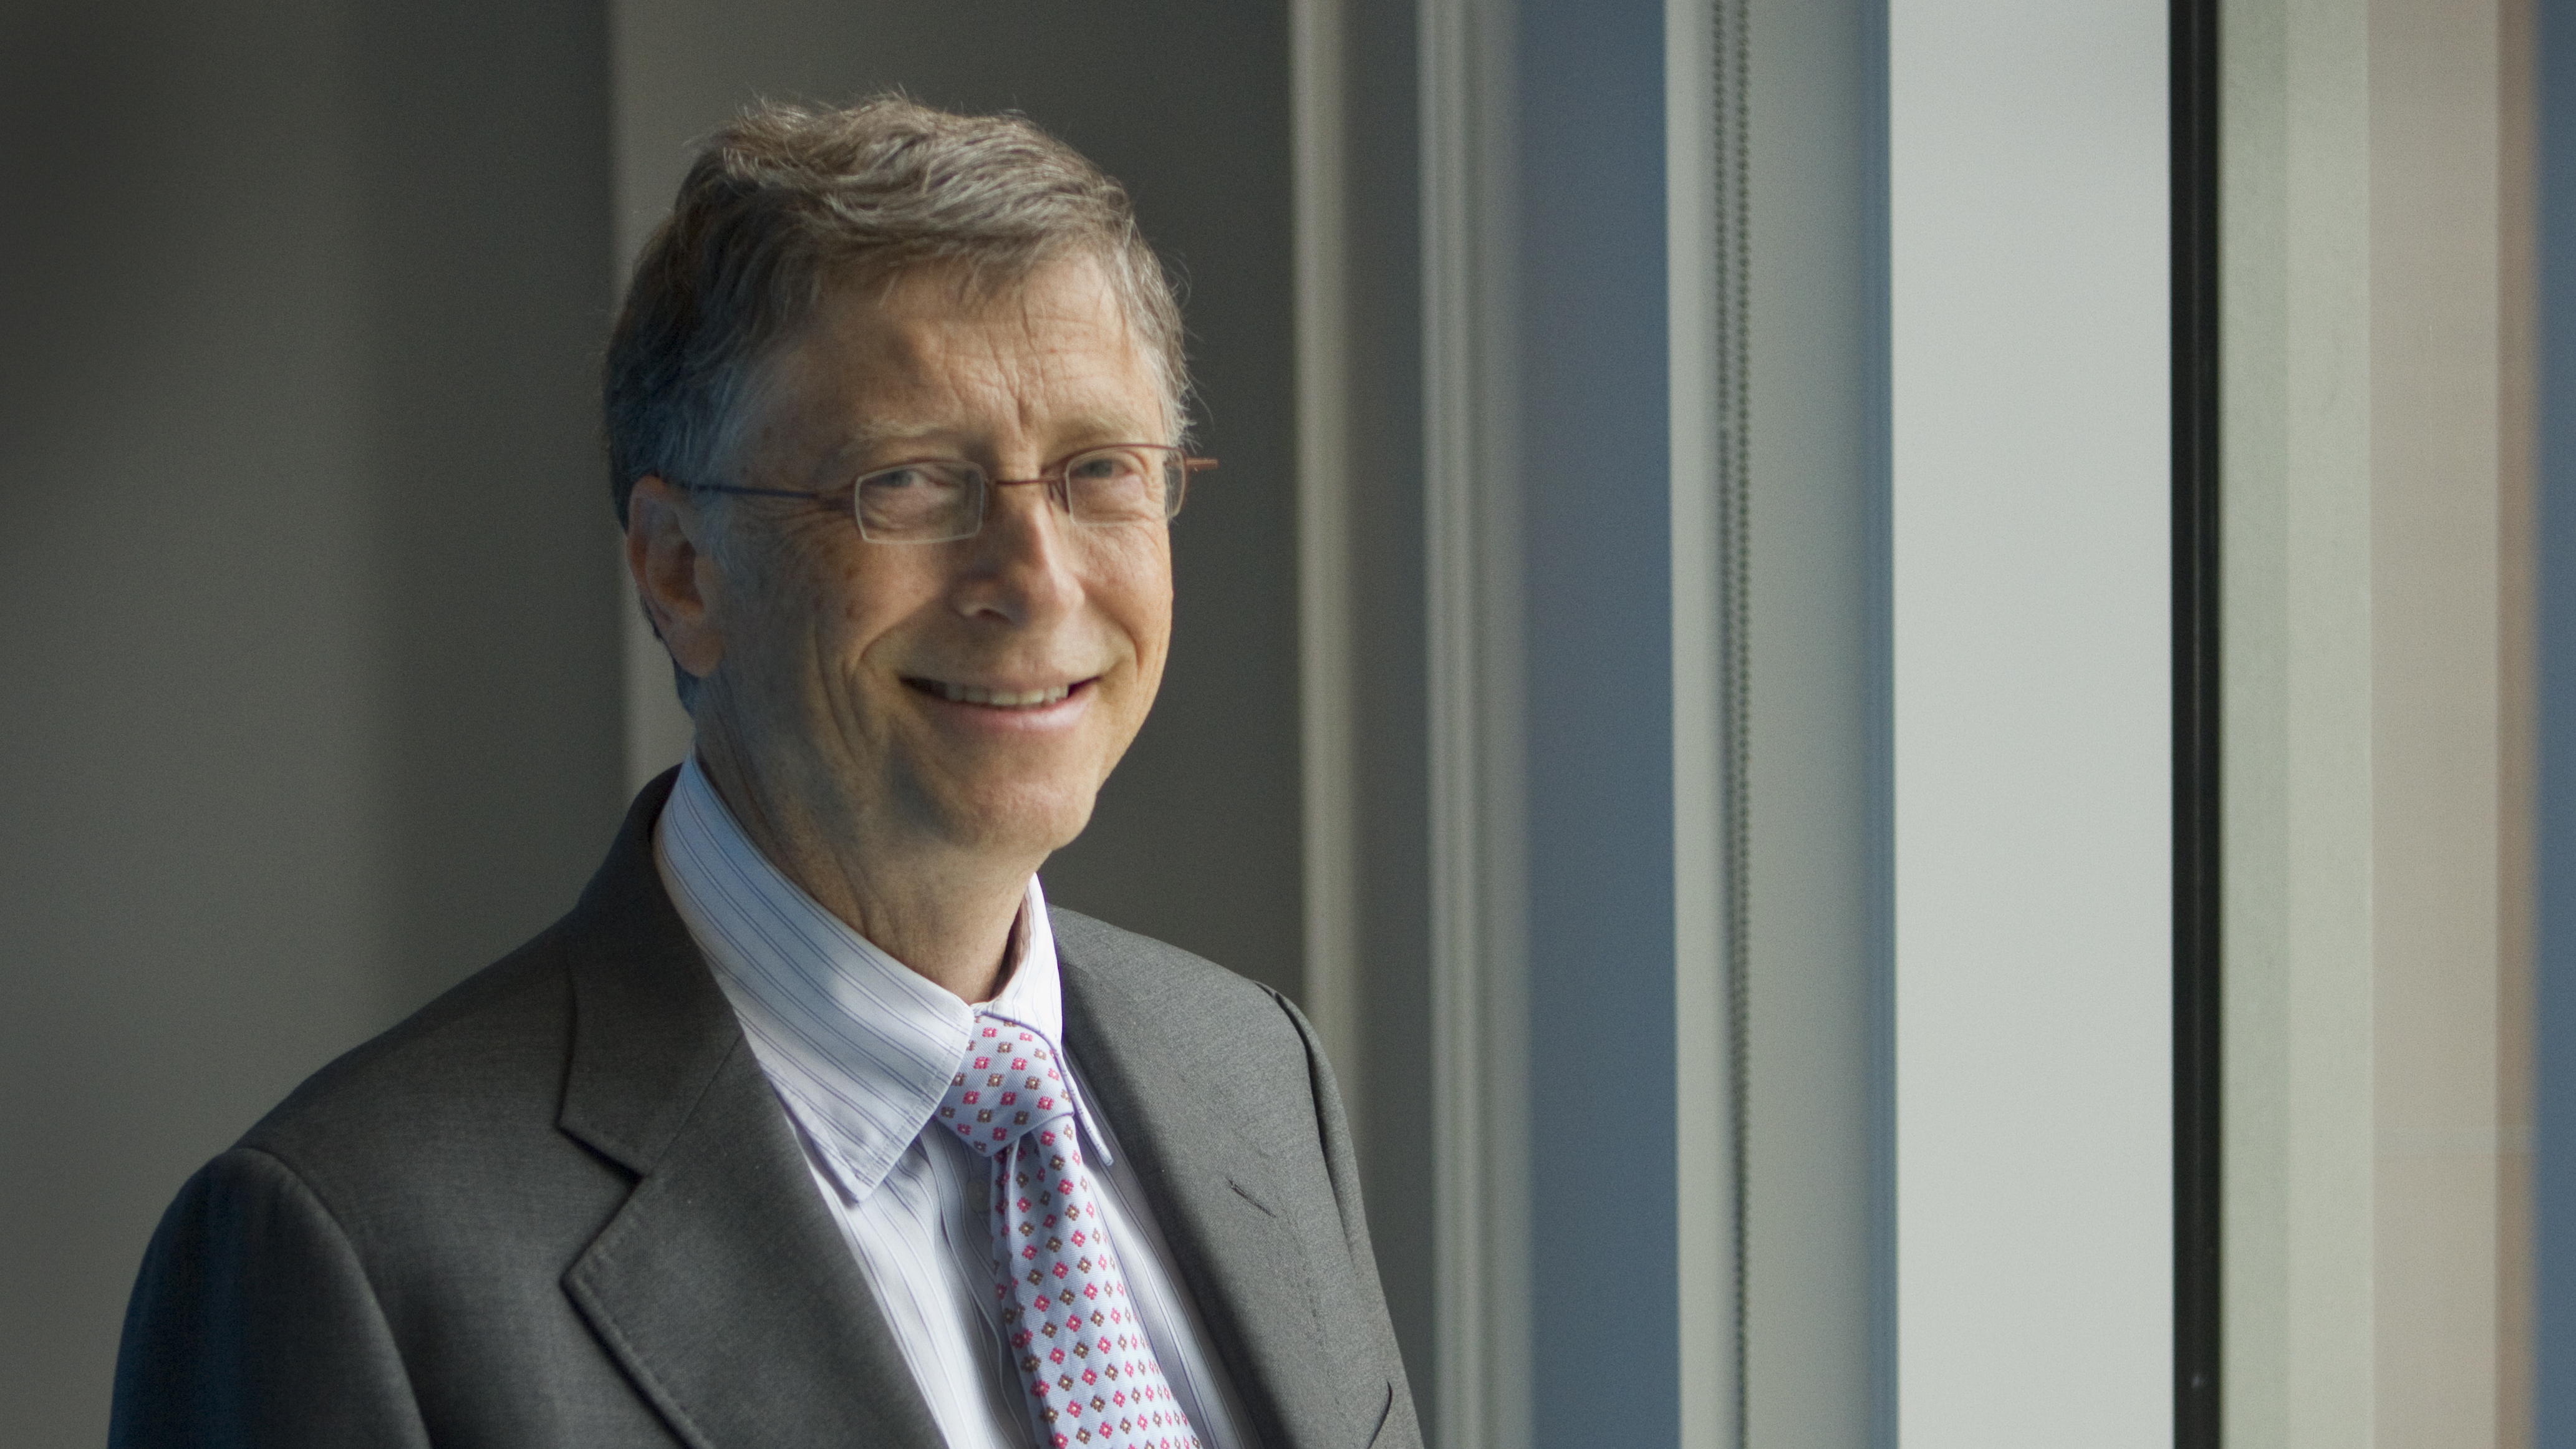 Bill_gates_wide-1ce7fdcc33d32052821391ea78213059444ff051